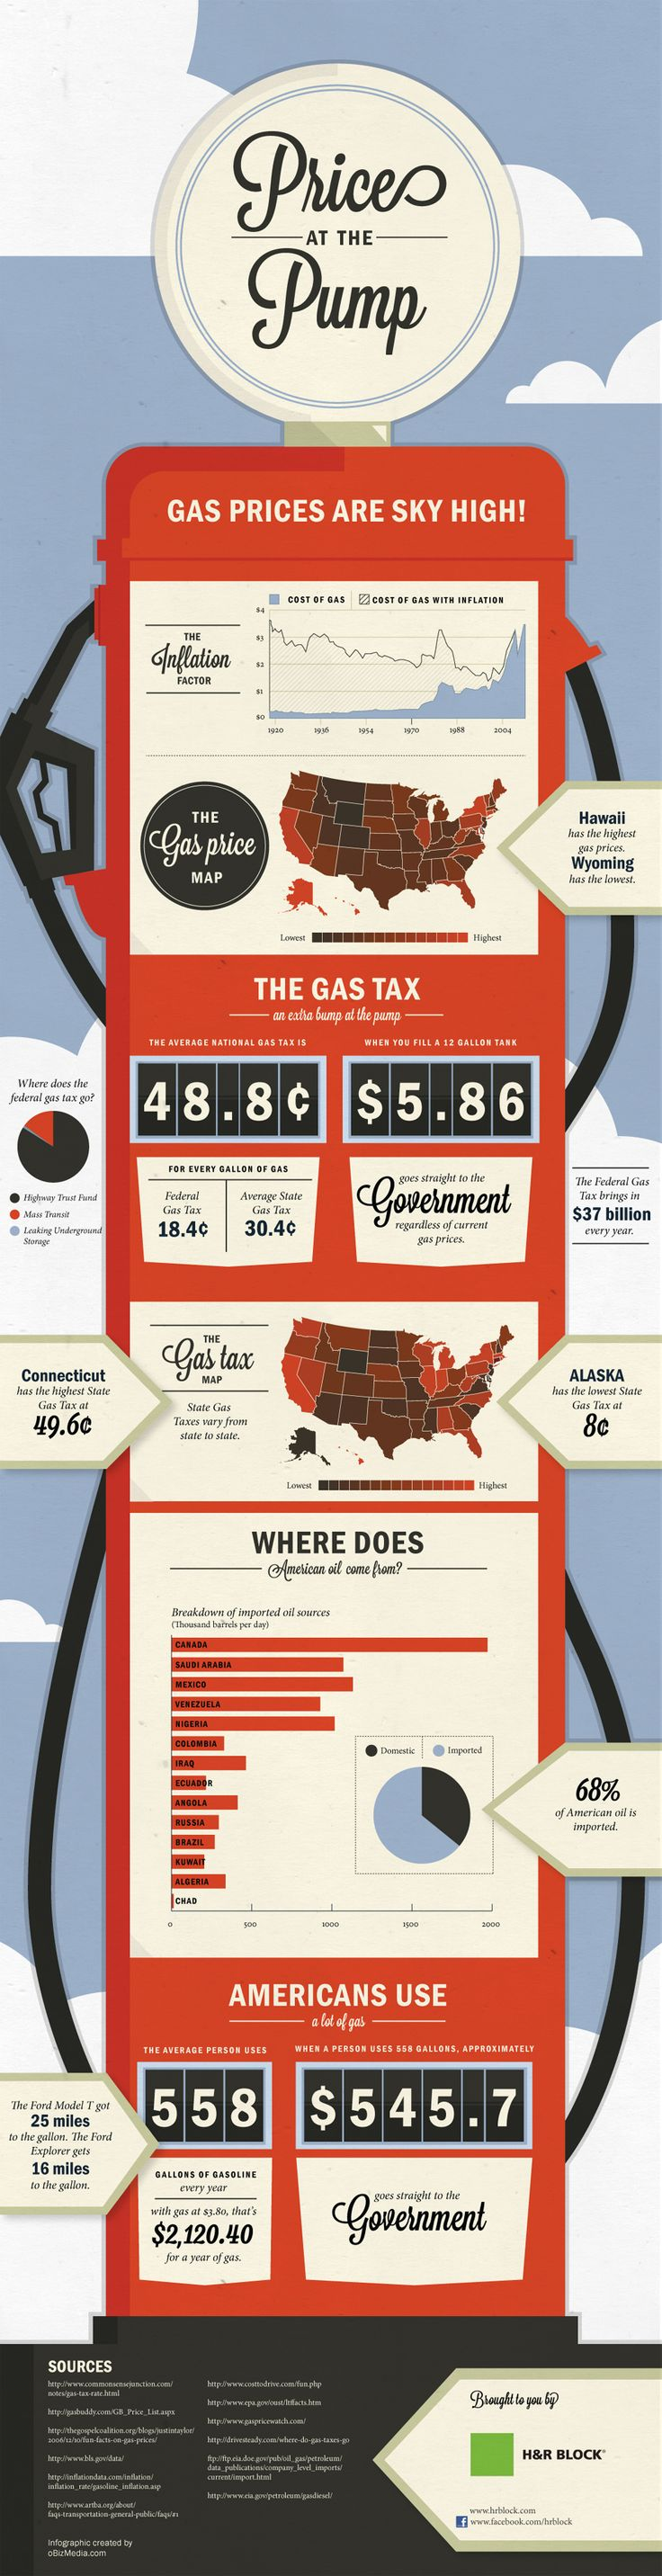 #INFOGRAPHIC: How Gas Prices Got So High  [ via besttopsites.com ]